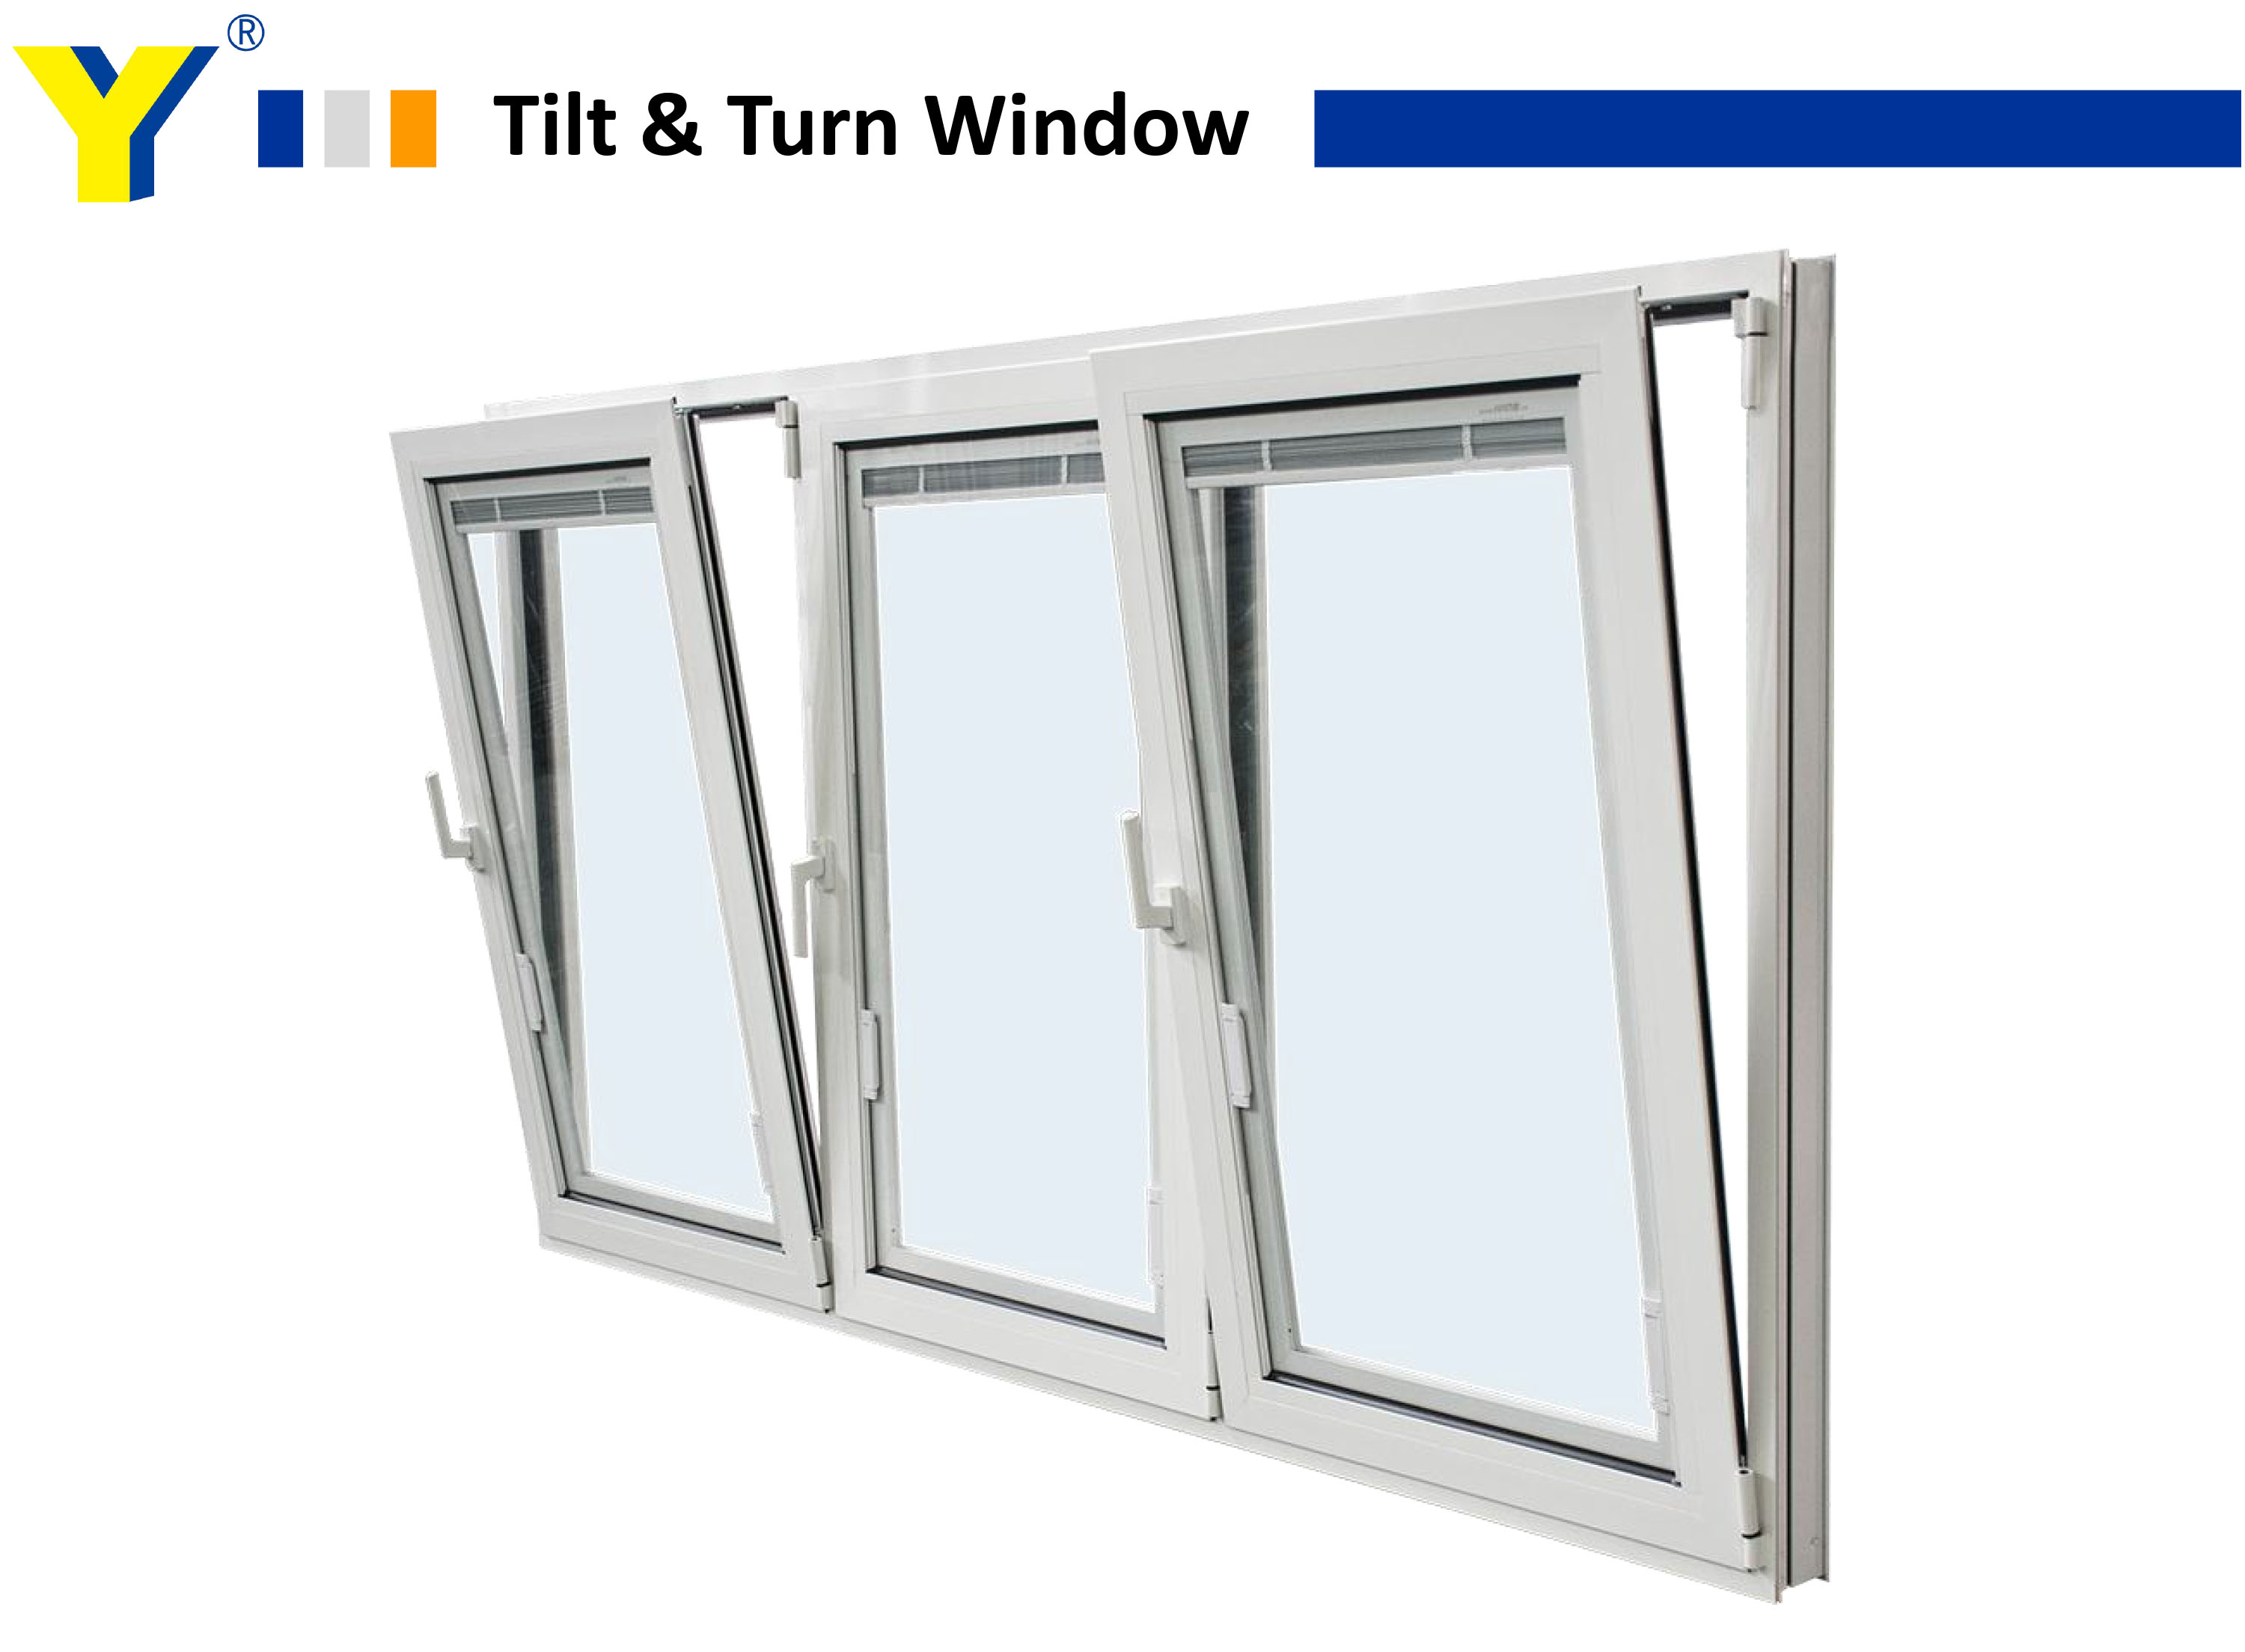 Aluminium Awning Window from YY specialised in Energy efficient aluminium double glazed windows & doors